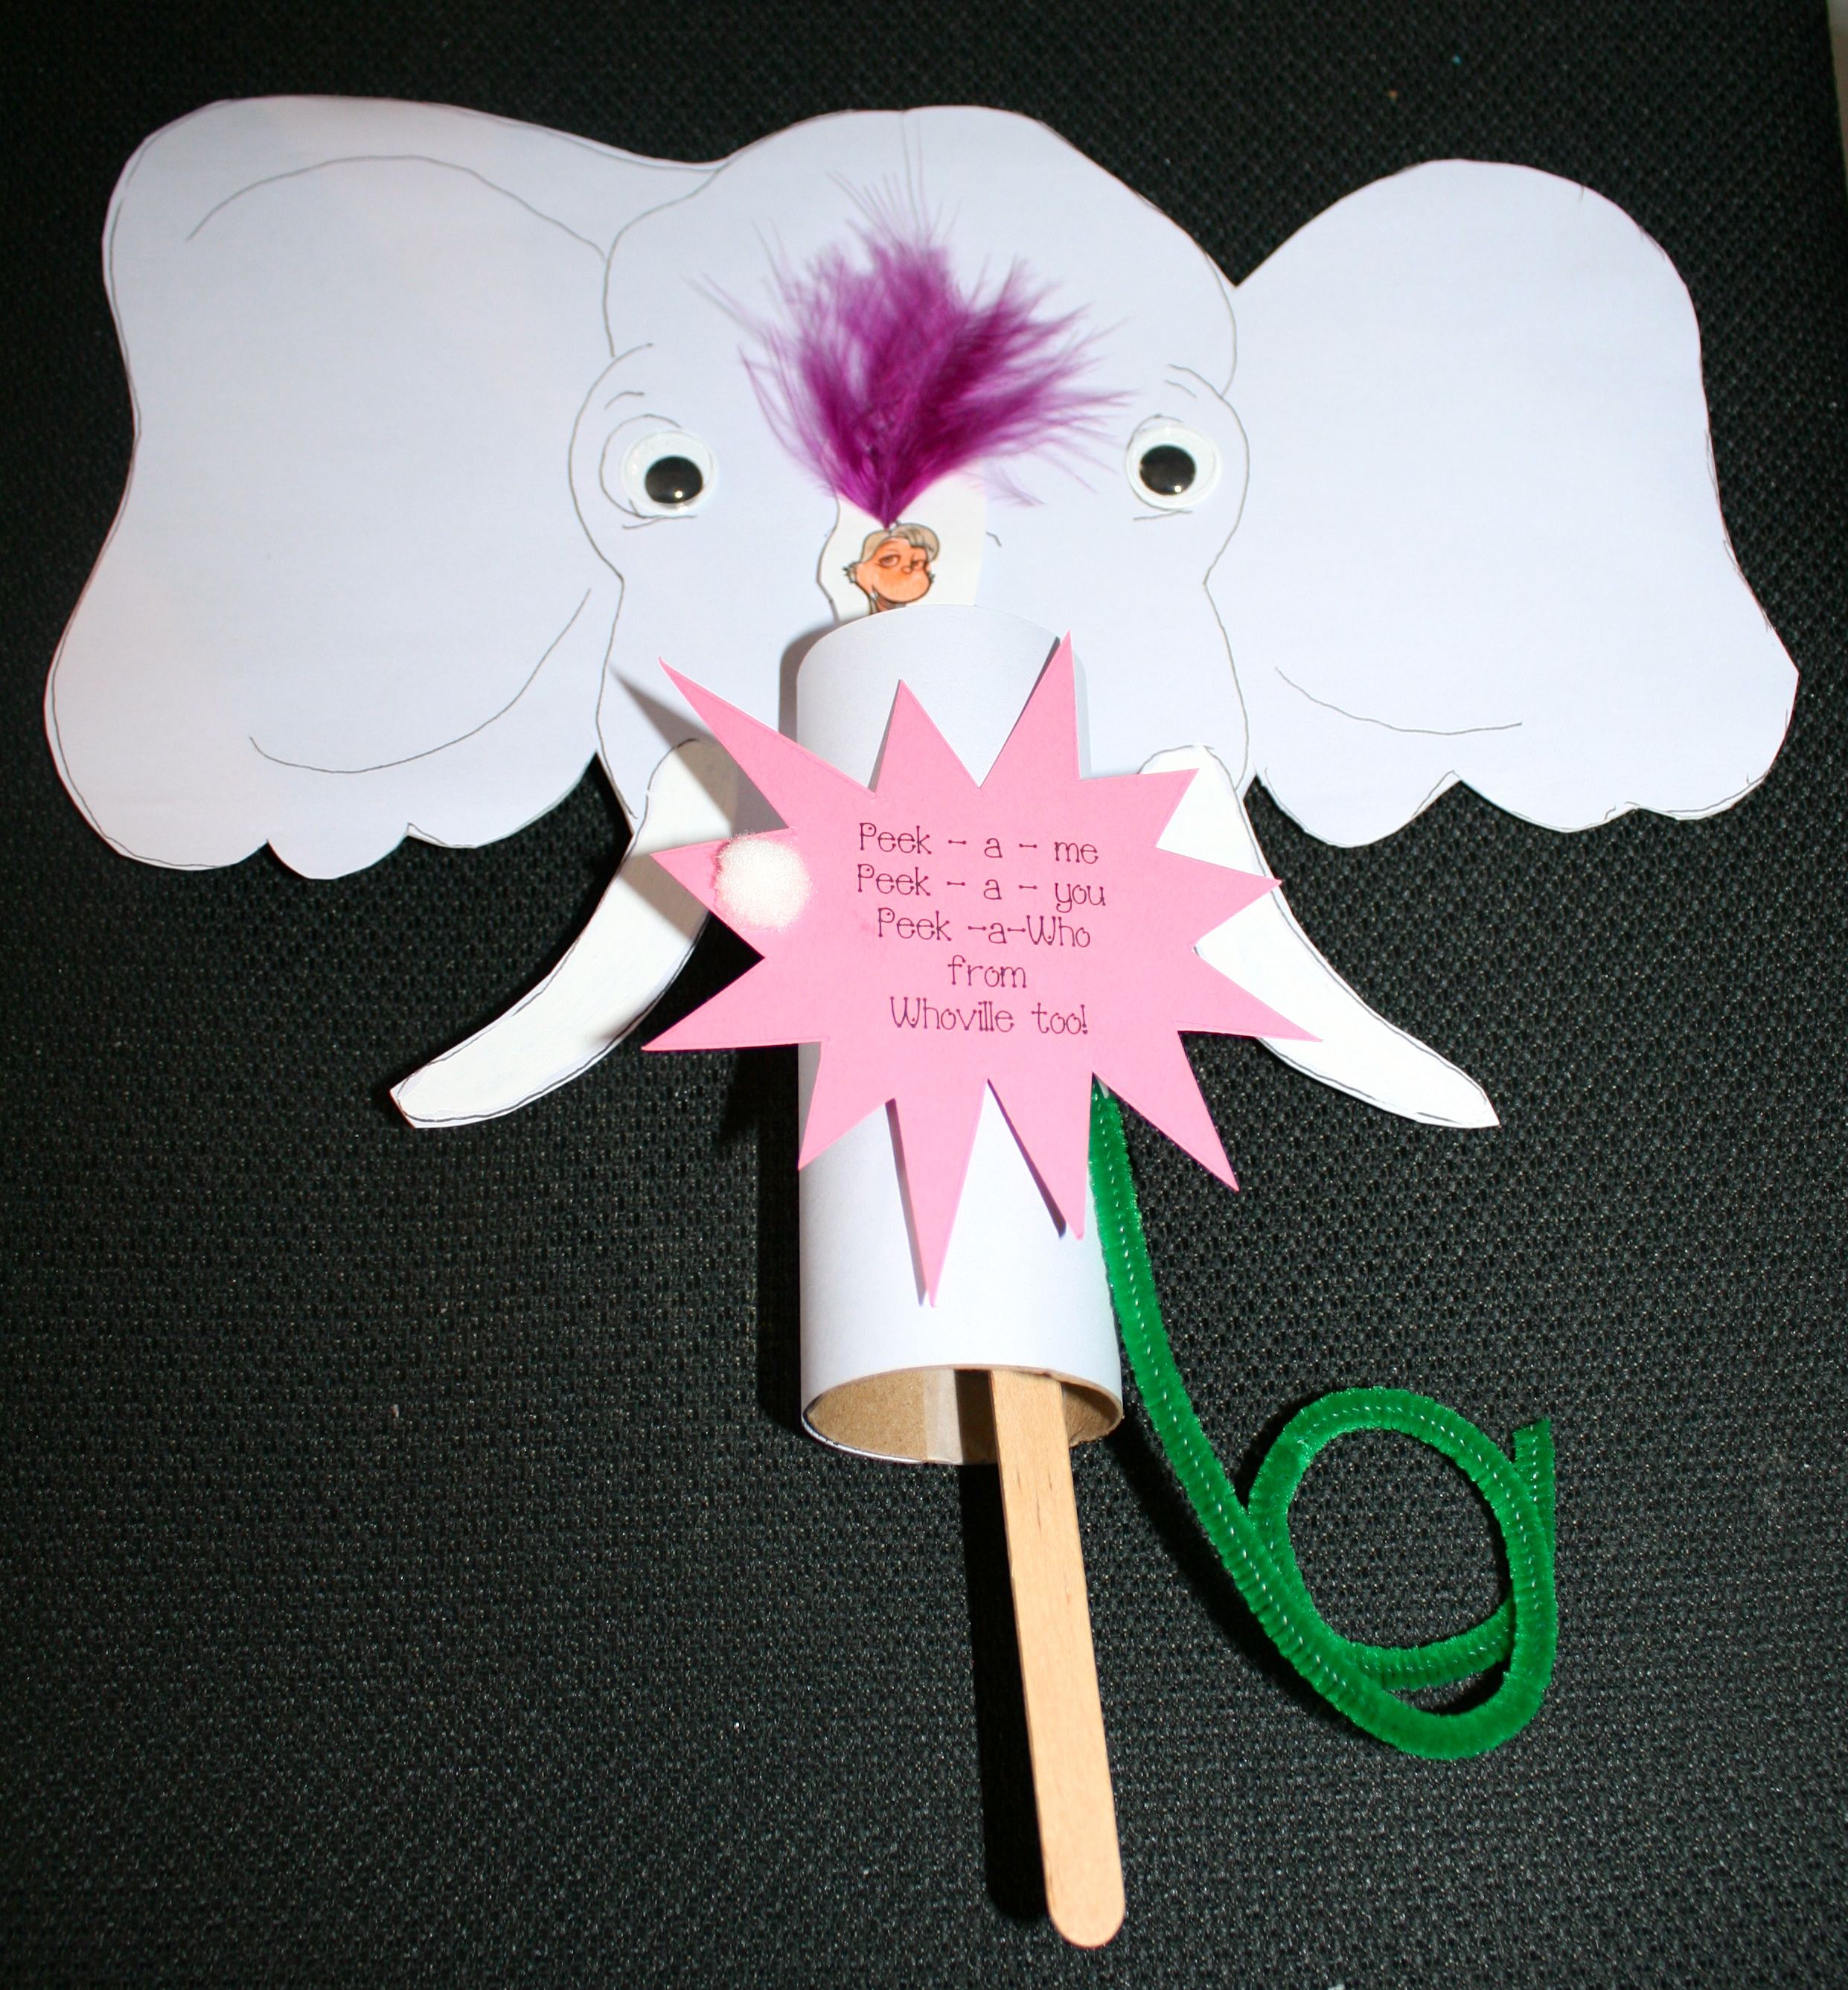 Horton writing prompts, Horton activities, horton lessons, horton crafts, horton puppets, whoville activities, whoville lessons, whoville crafts, whoville puppets, writing prompts for seuss, seuss writing prompts, writing prompts for March, bulletin boards for seuss, bulletin boards for Horton hears a who, horton bulletin board ideas,